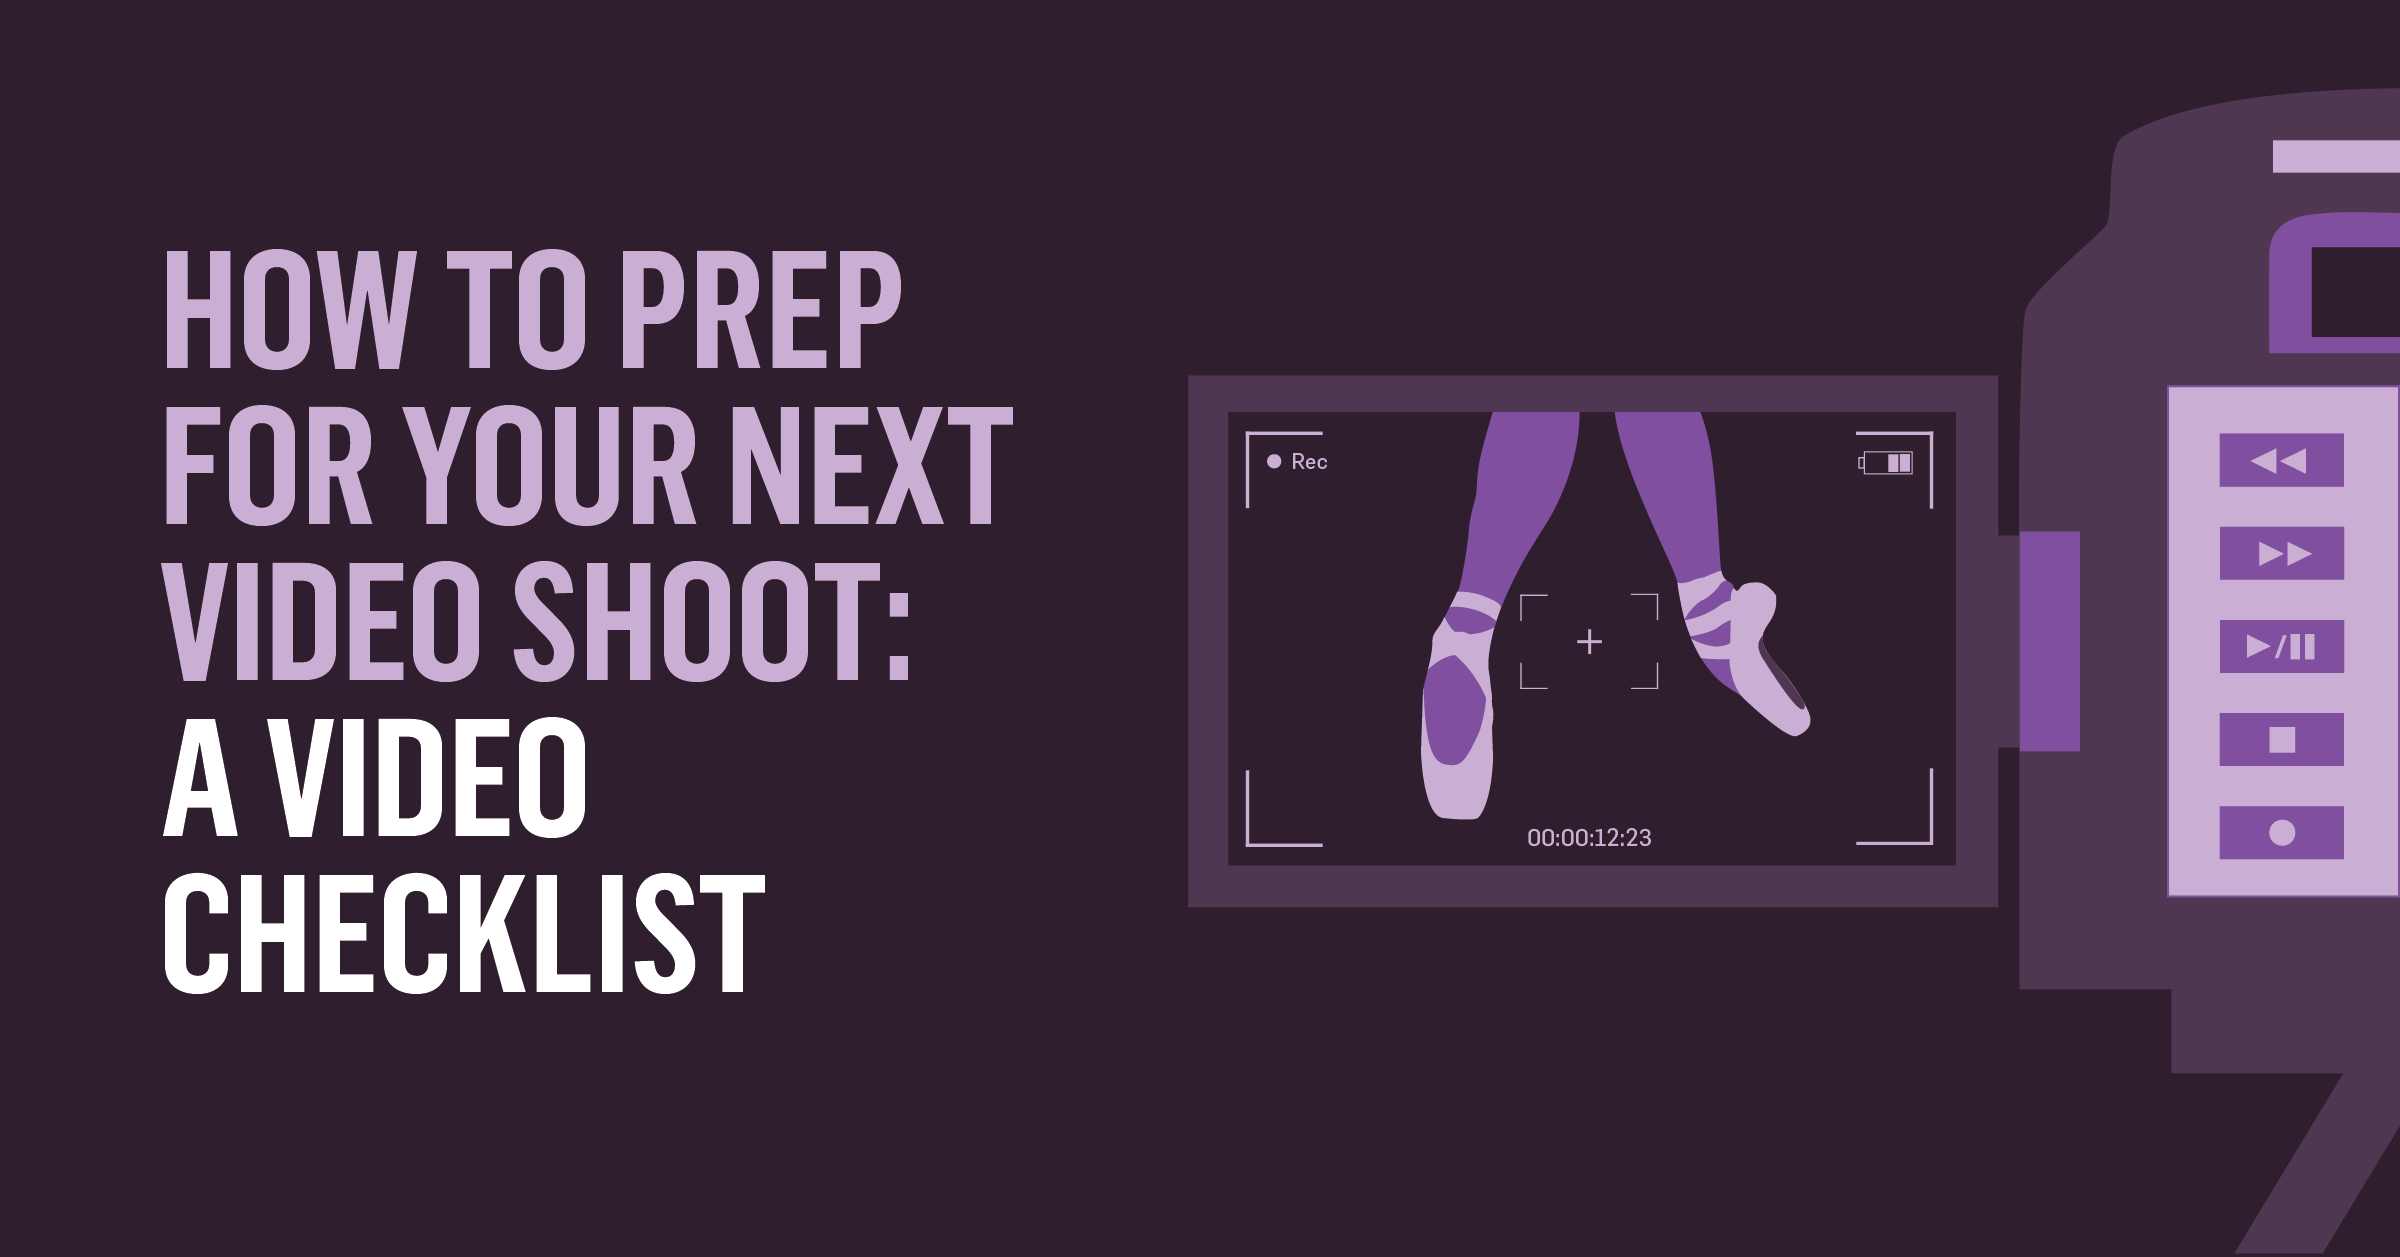 How To Prep For Your Next Video Shoot: A Video Checklist